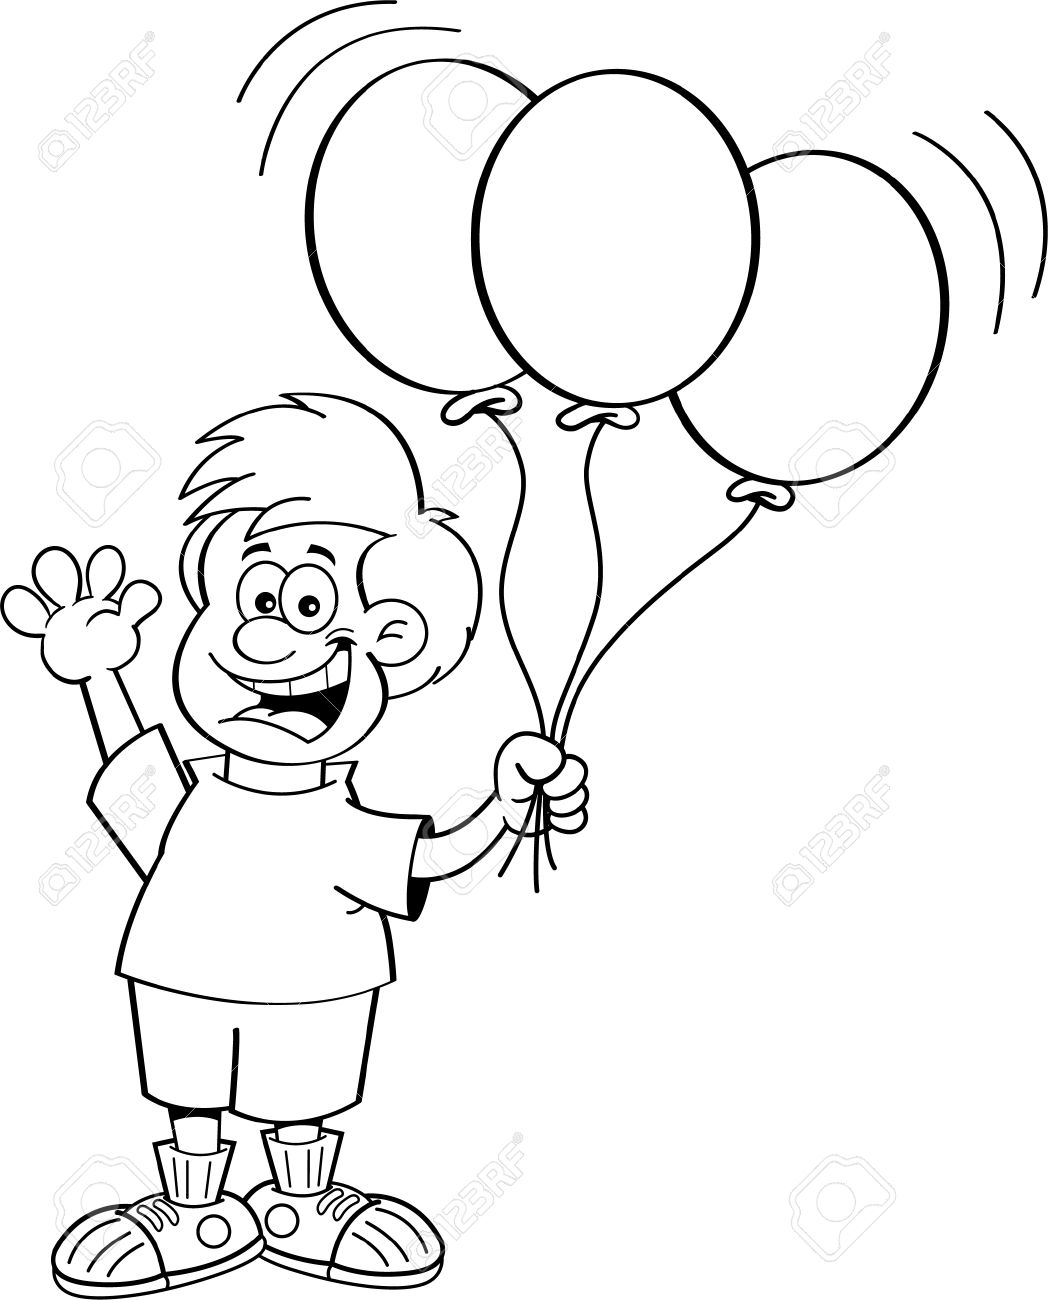 Black and white illustration of a boy holding balloons.